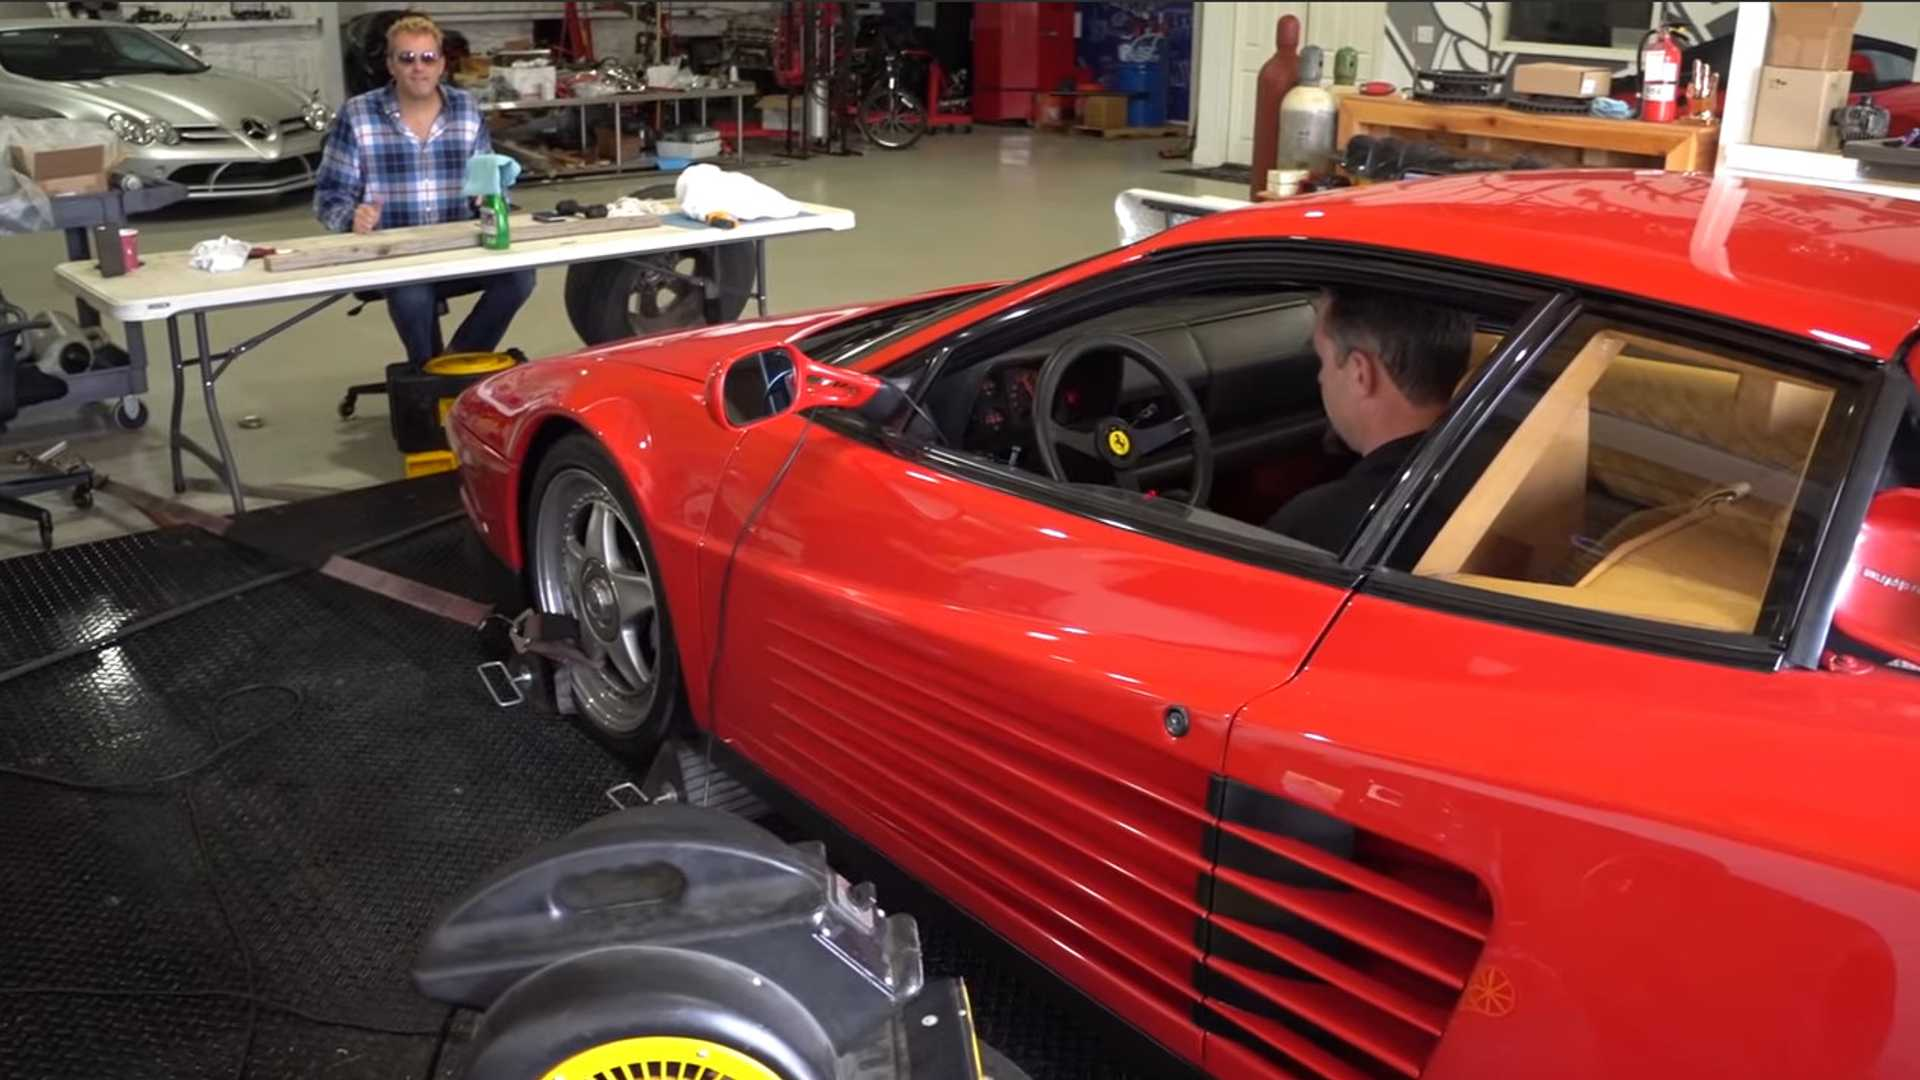 How Much Power Does The 1987 Ferrari Testarossa Still Have?